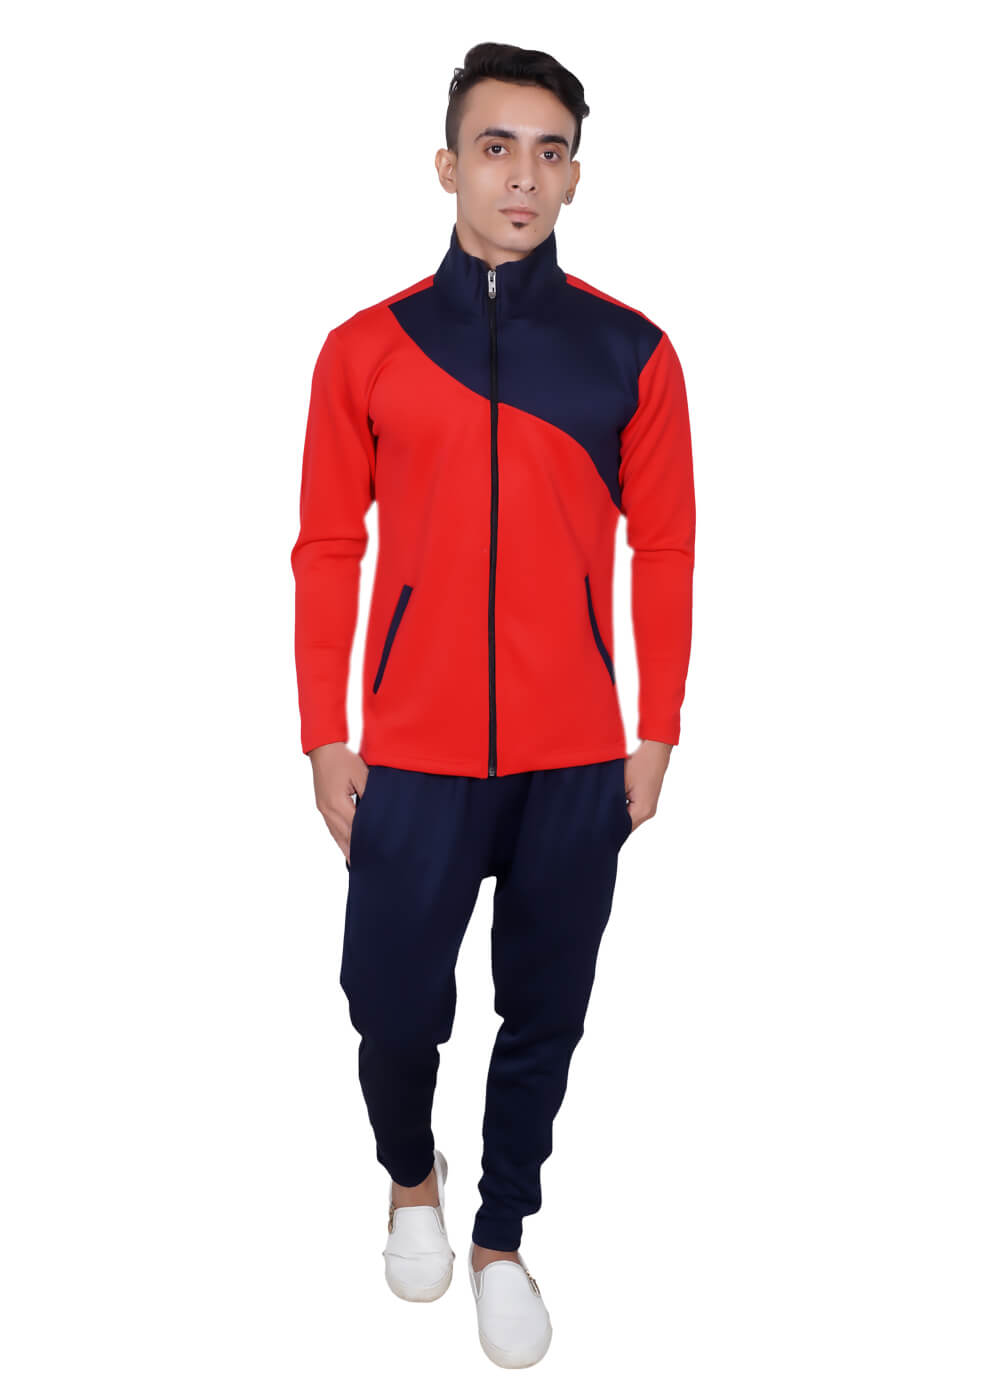 Cheap Tracksuits Manufacturers in Pune